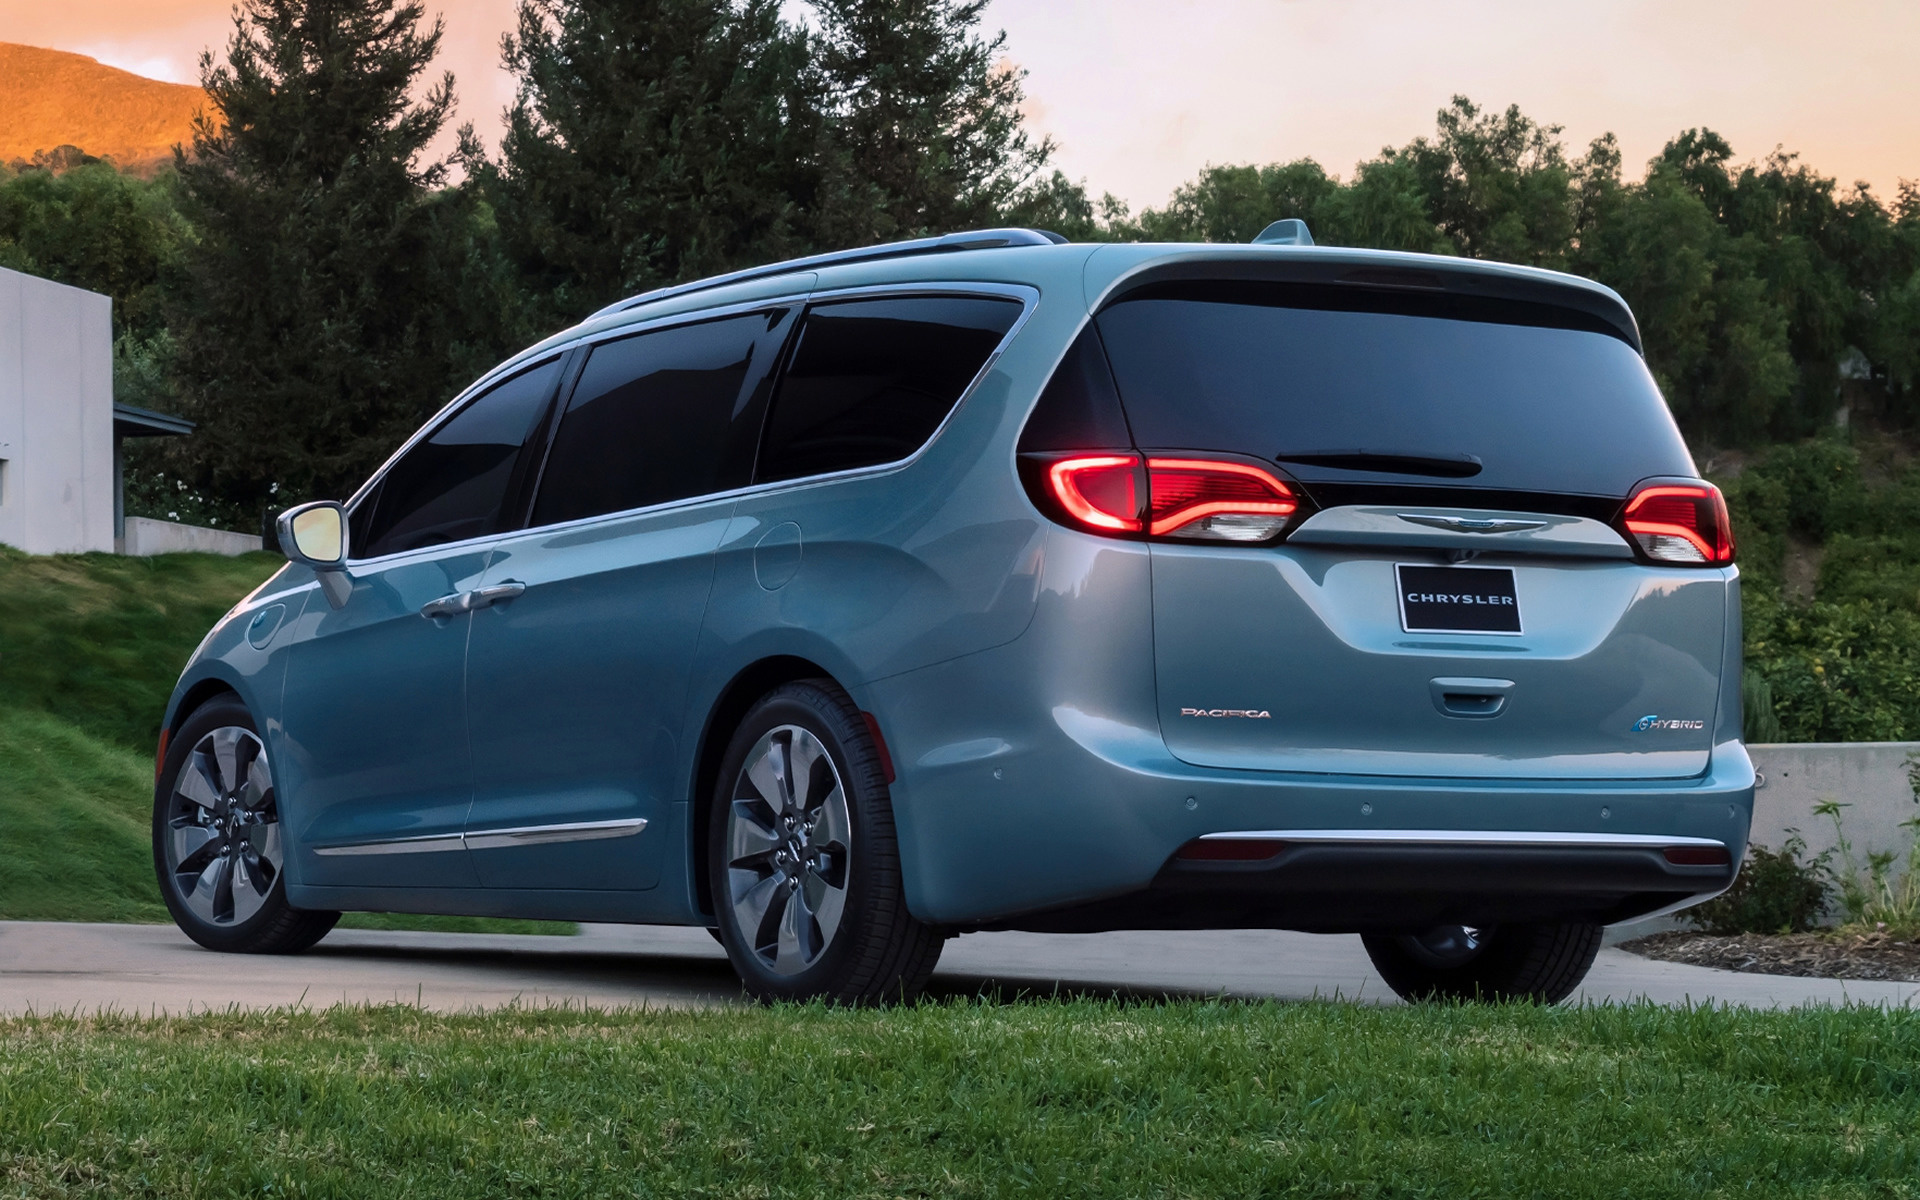 2017 Chrysler Pacifica Hybrid Wallpapers And Hd Images